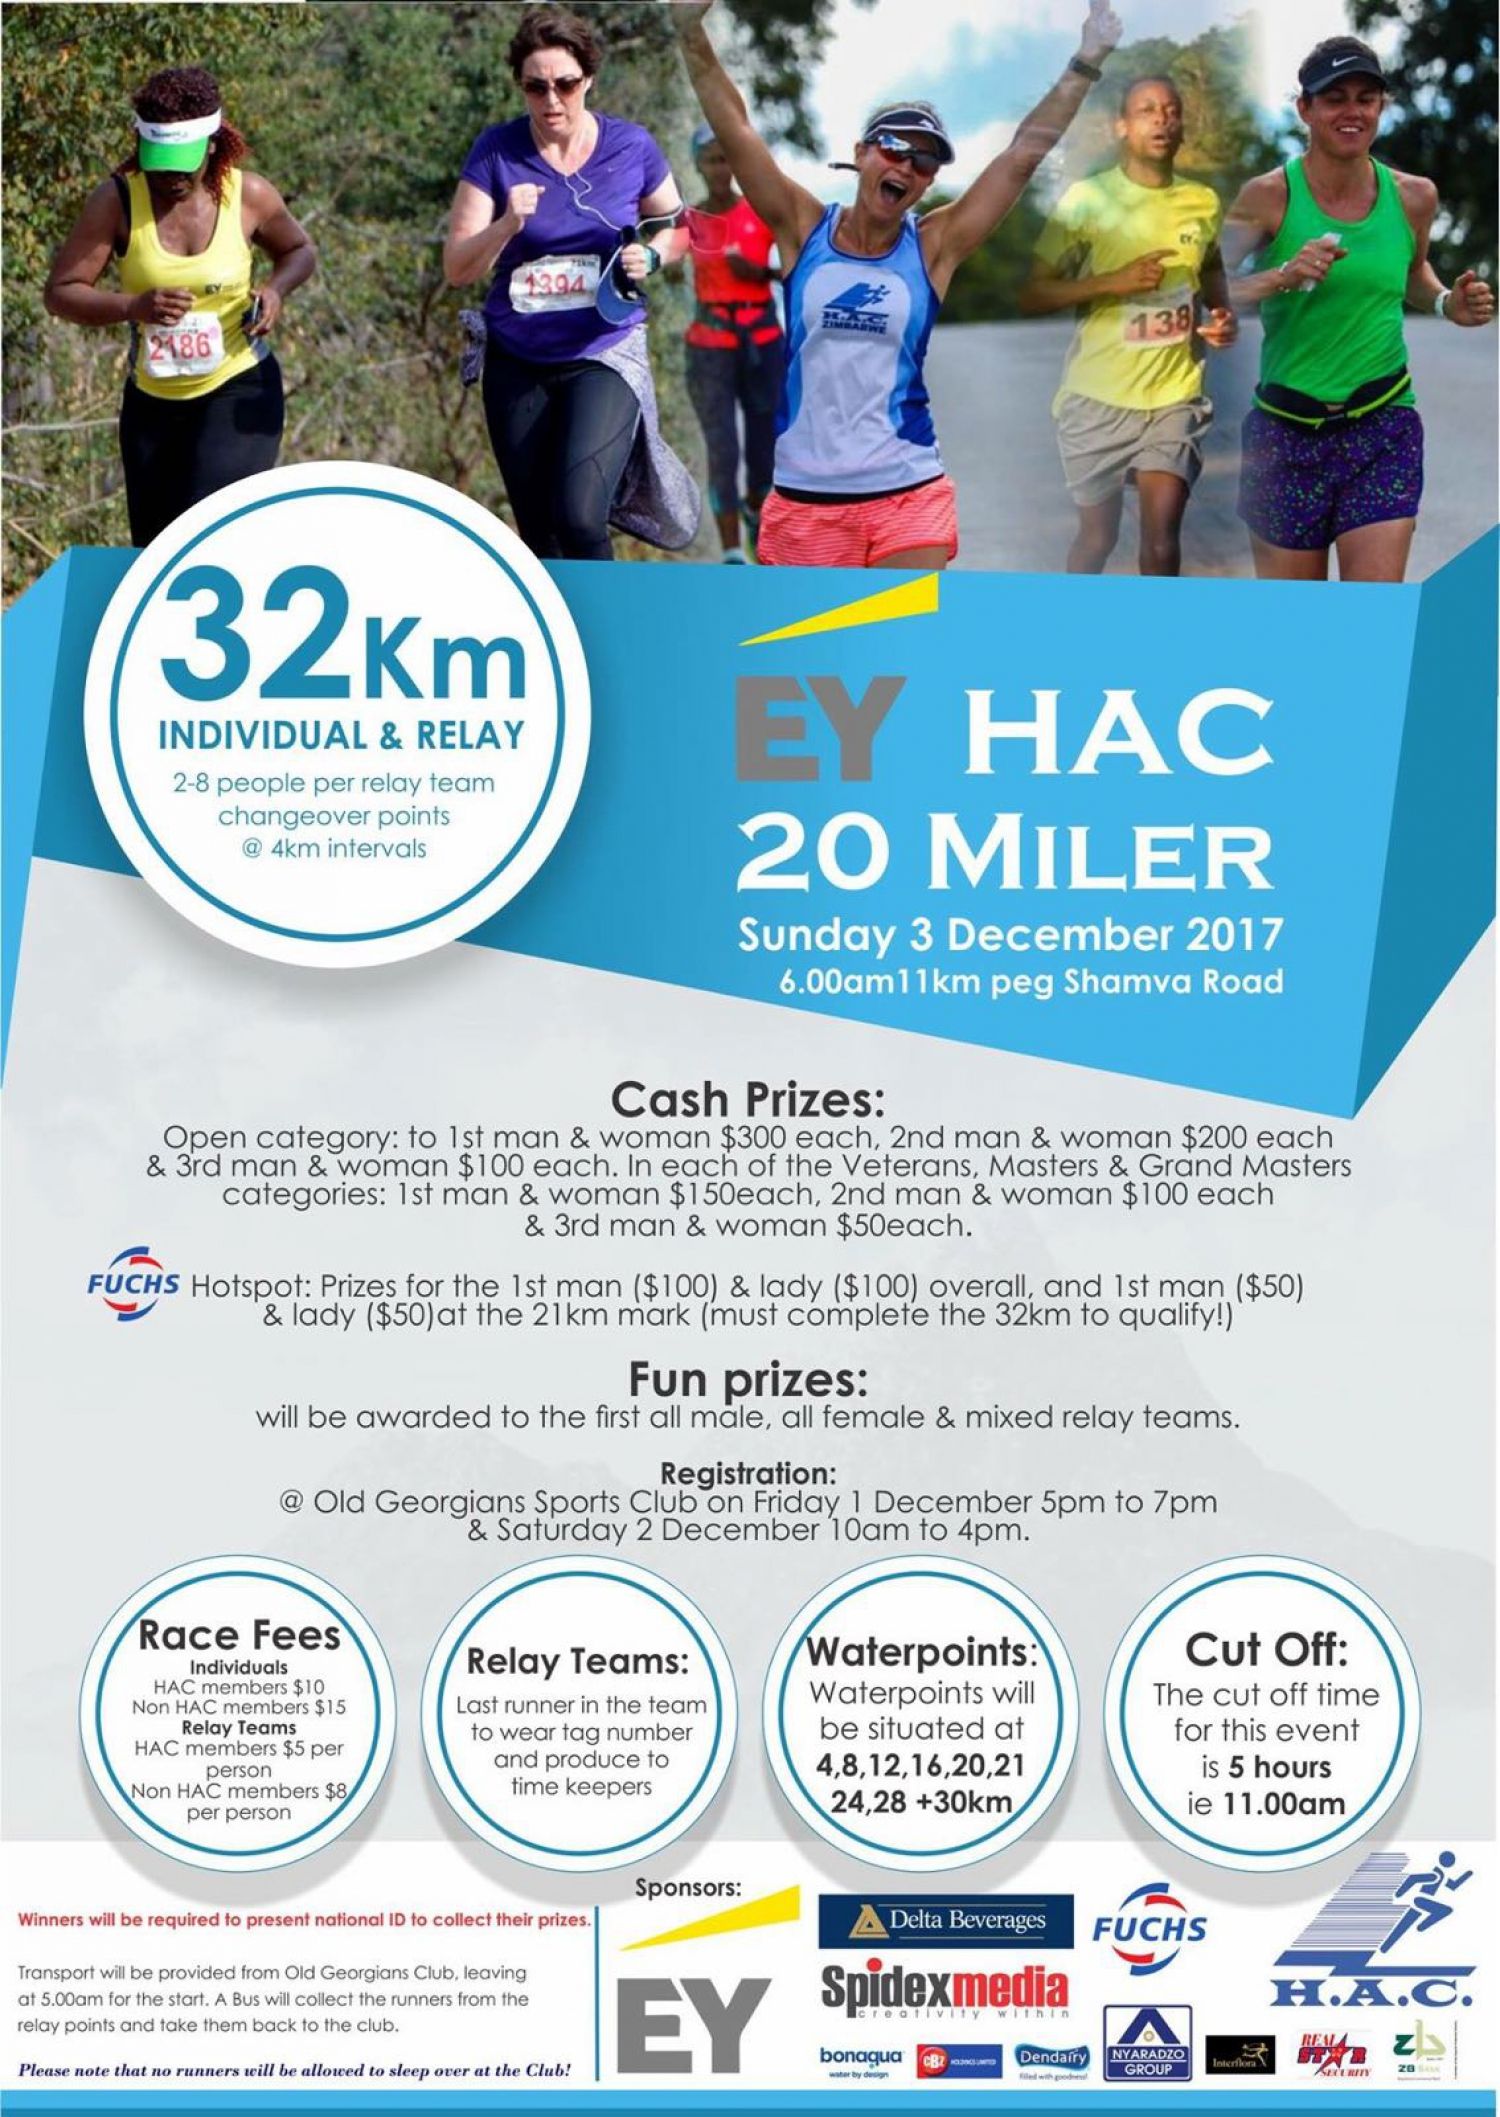 Running EY HAC 20 MILER - SUNDAY 3 DECEMBER 2017